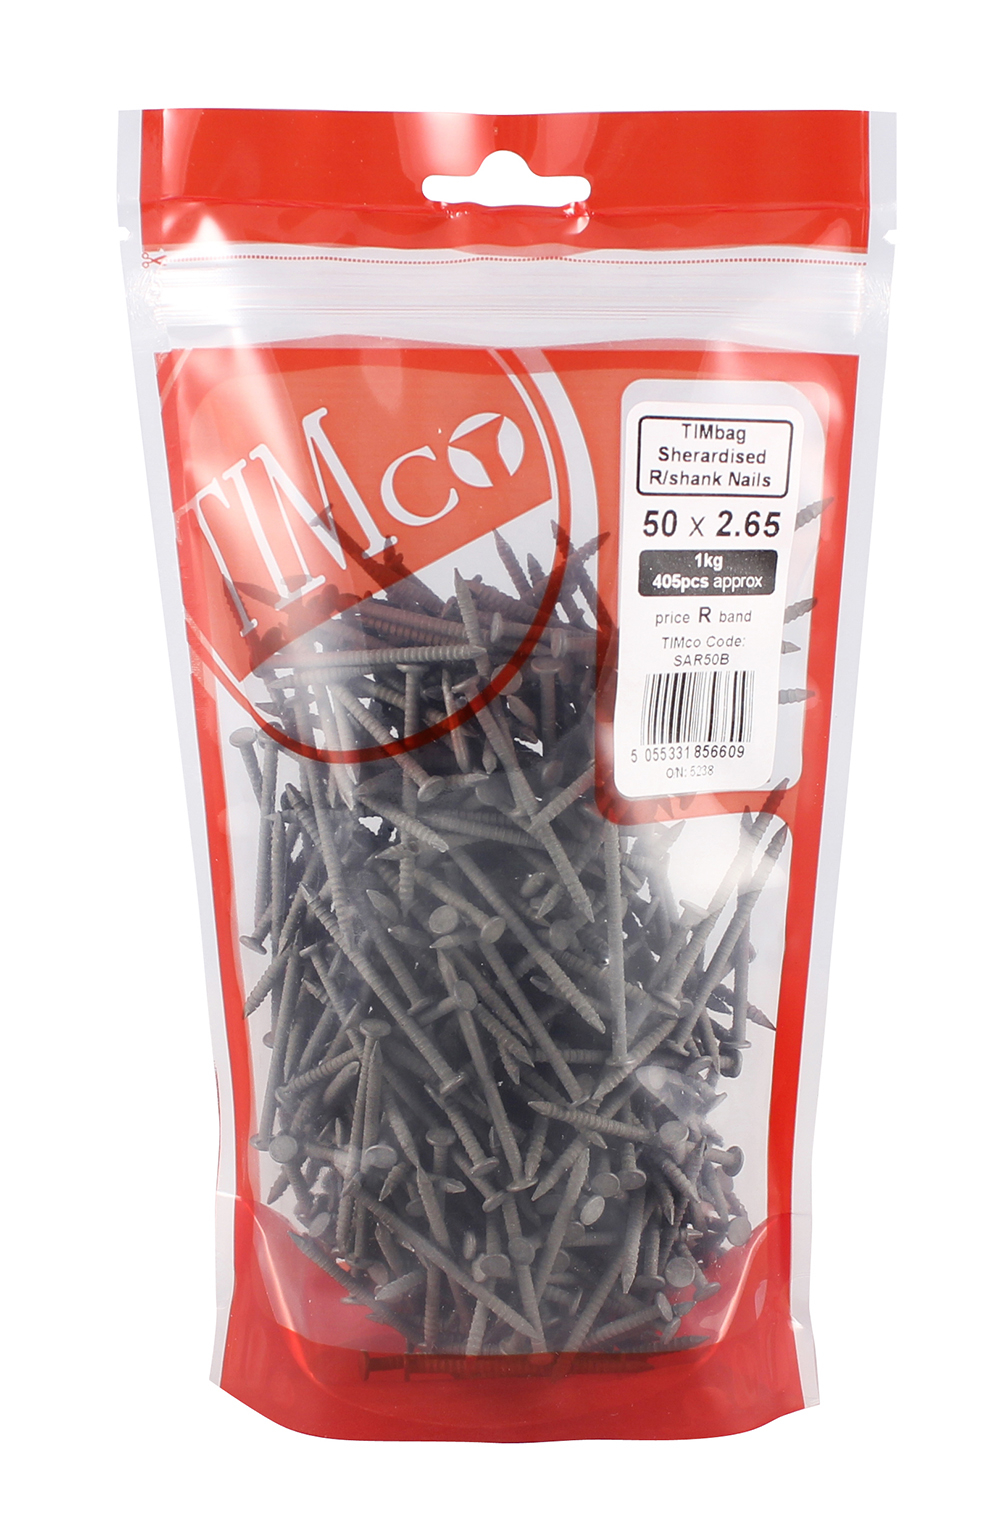 TIMco 50 x 2.65 Annular Ringshank - Sheraradised 1kg Bag